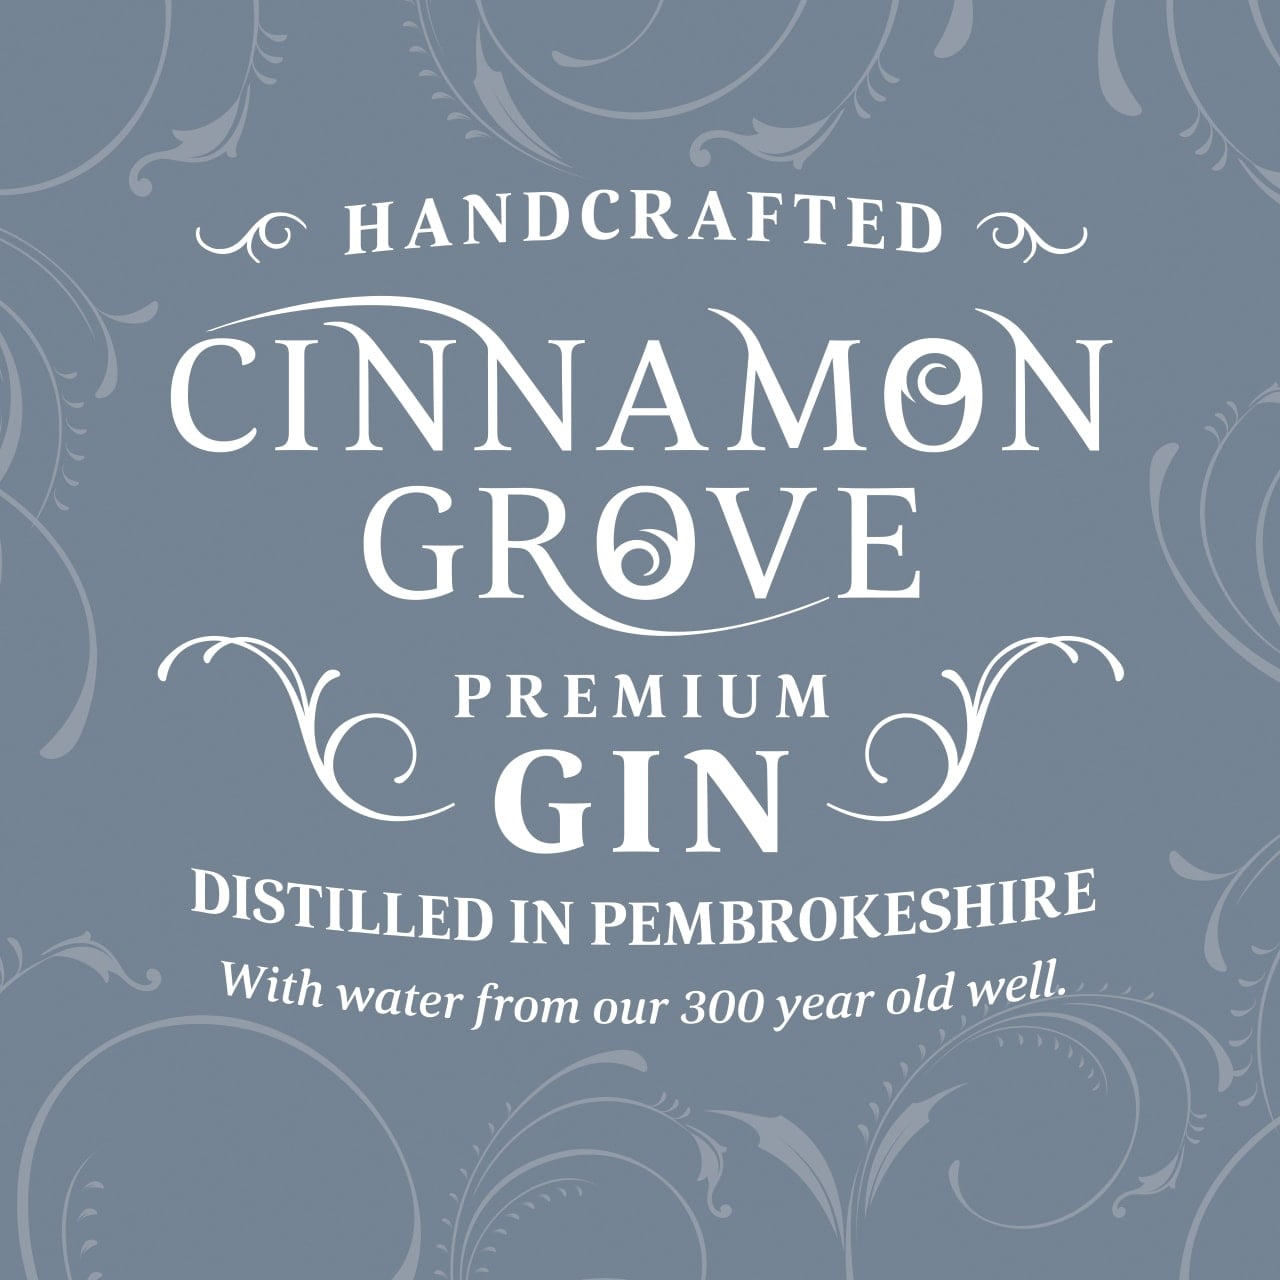 Cinnamon Grove Premium Gin Corporate Branding Case Study